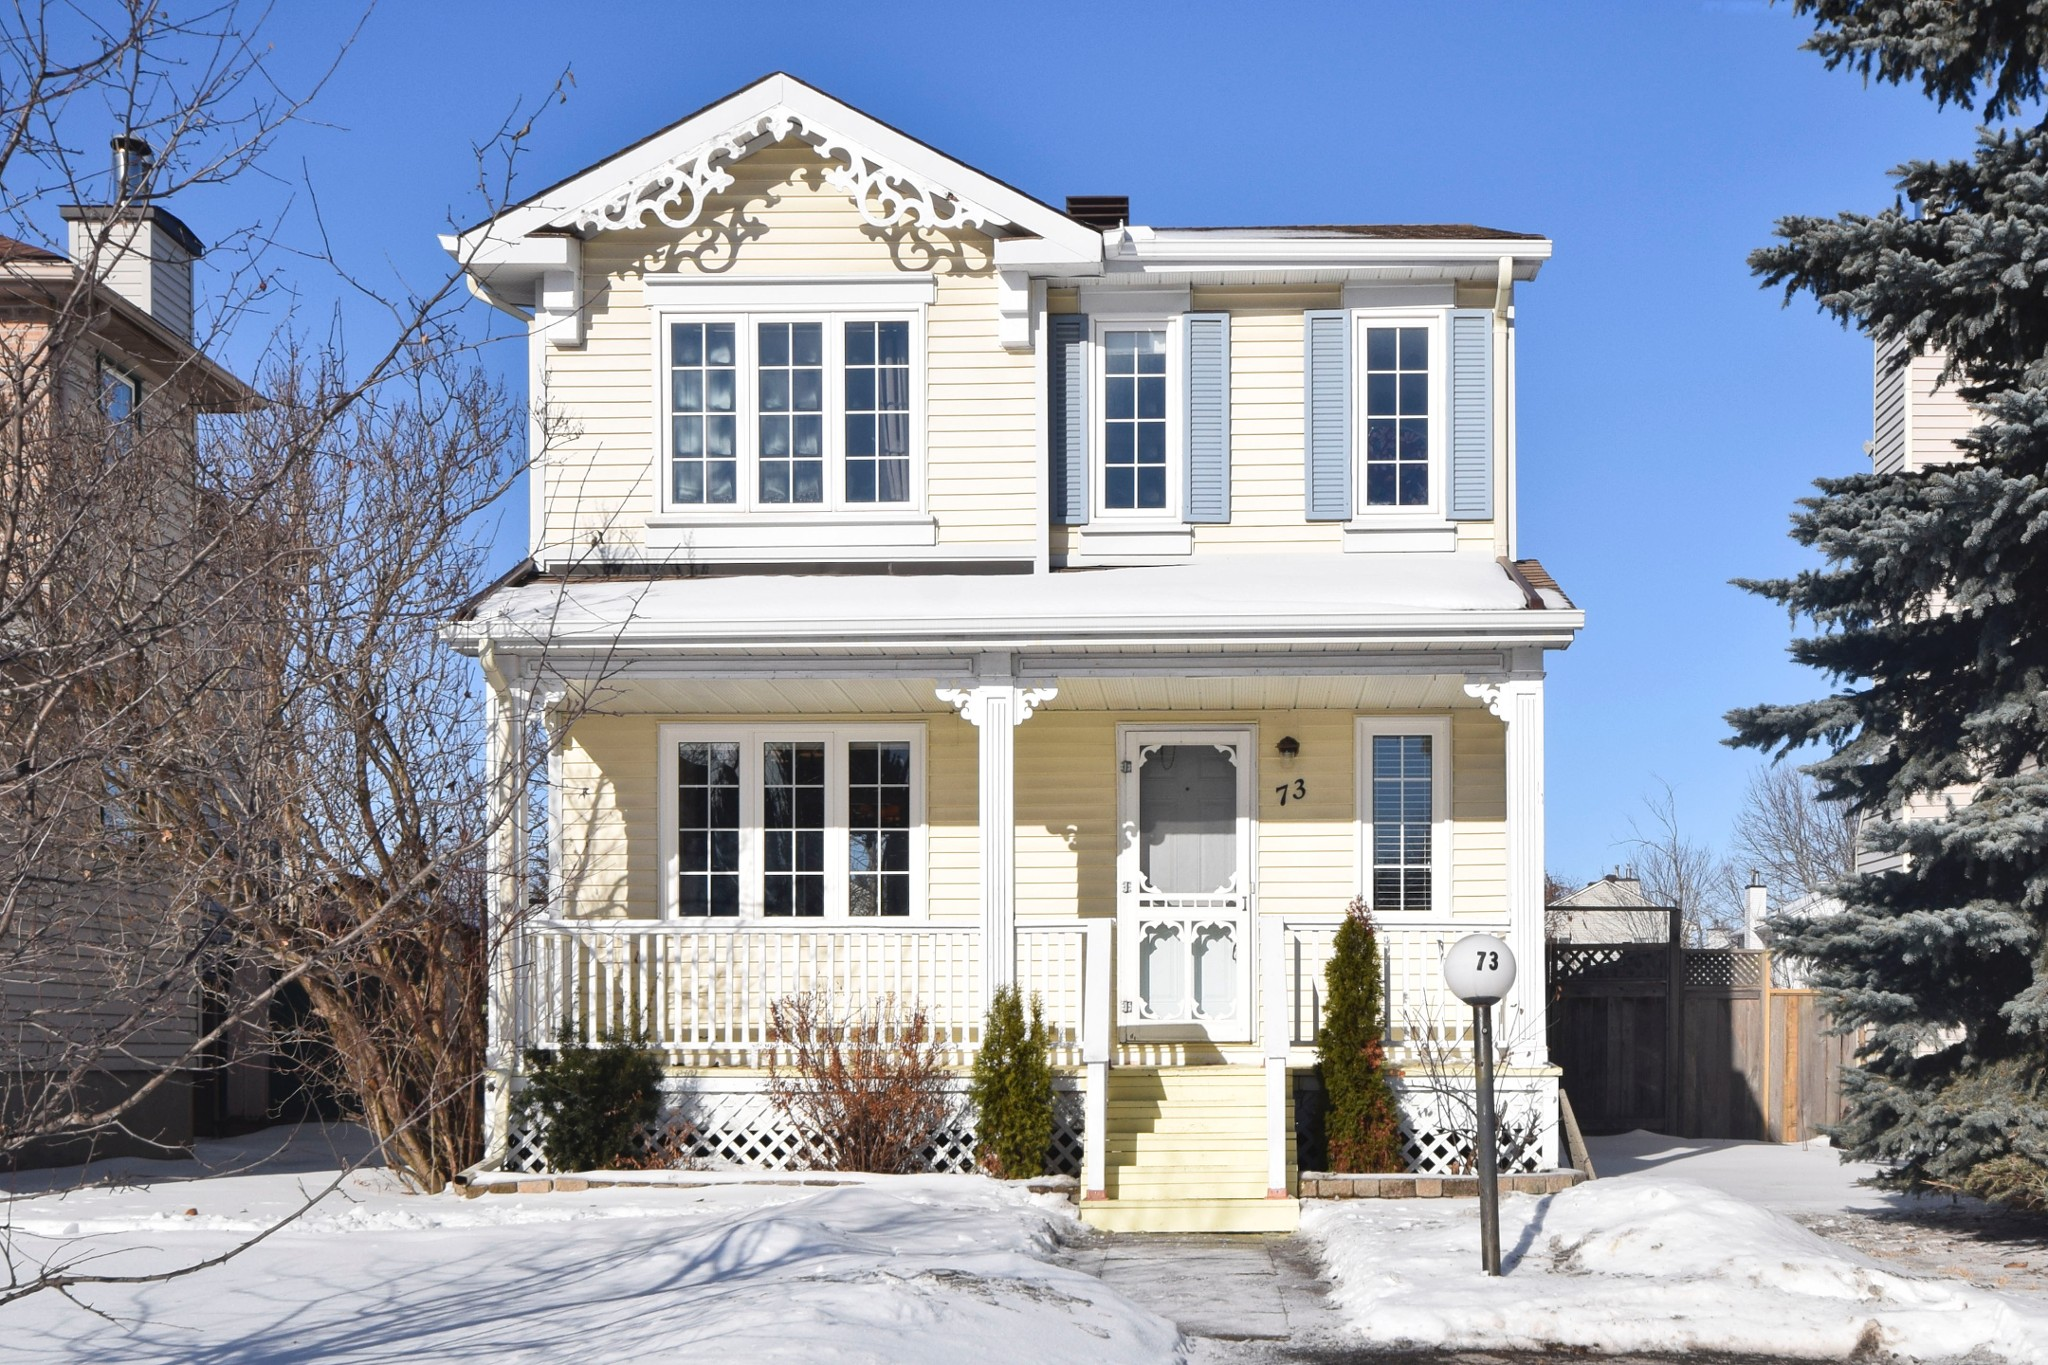 Main Photo: 73 Houlahan Street in Ottawa: House for sale : MLS®# 1090130